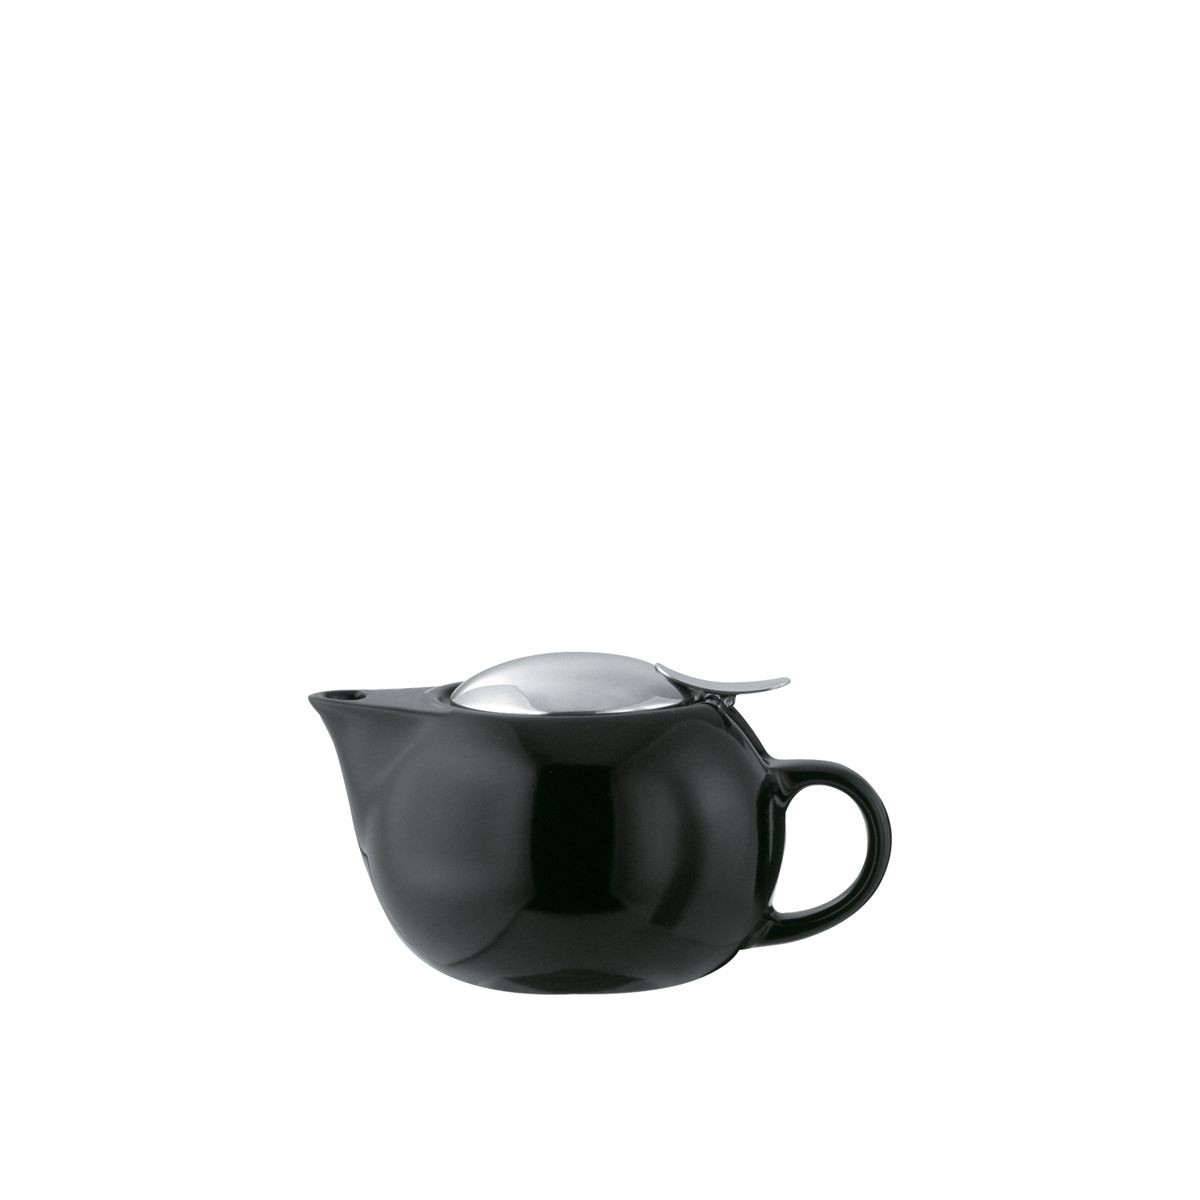 Service Ideas TPC10BL Black Ceramic Teapot with Lid, Infuser Basket, 10 oz.